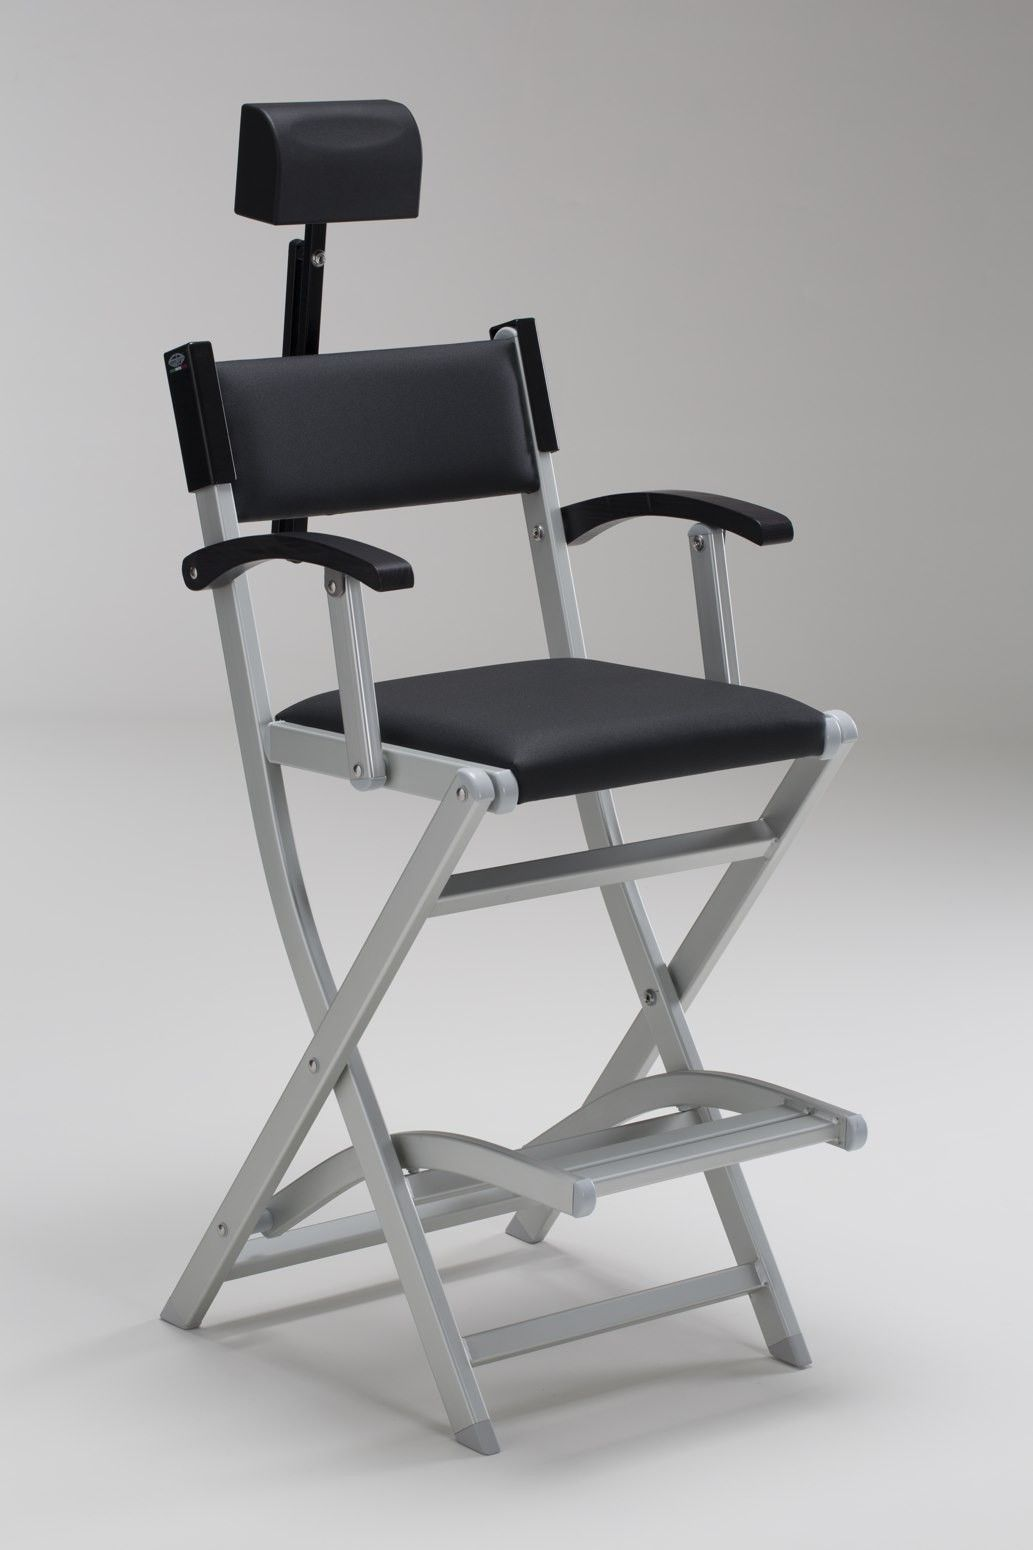 make up chair folding chairs and tables set makeup with headrest for artists in 2019 anti rollover aluminium s105 directors cantoni aesthetic professionals